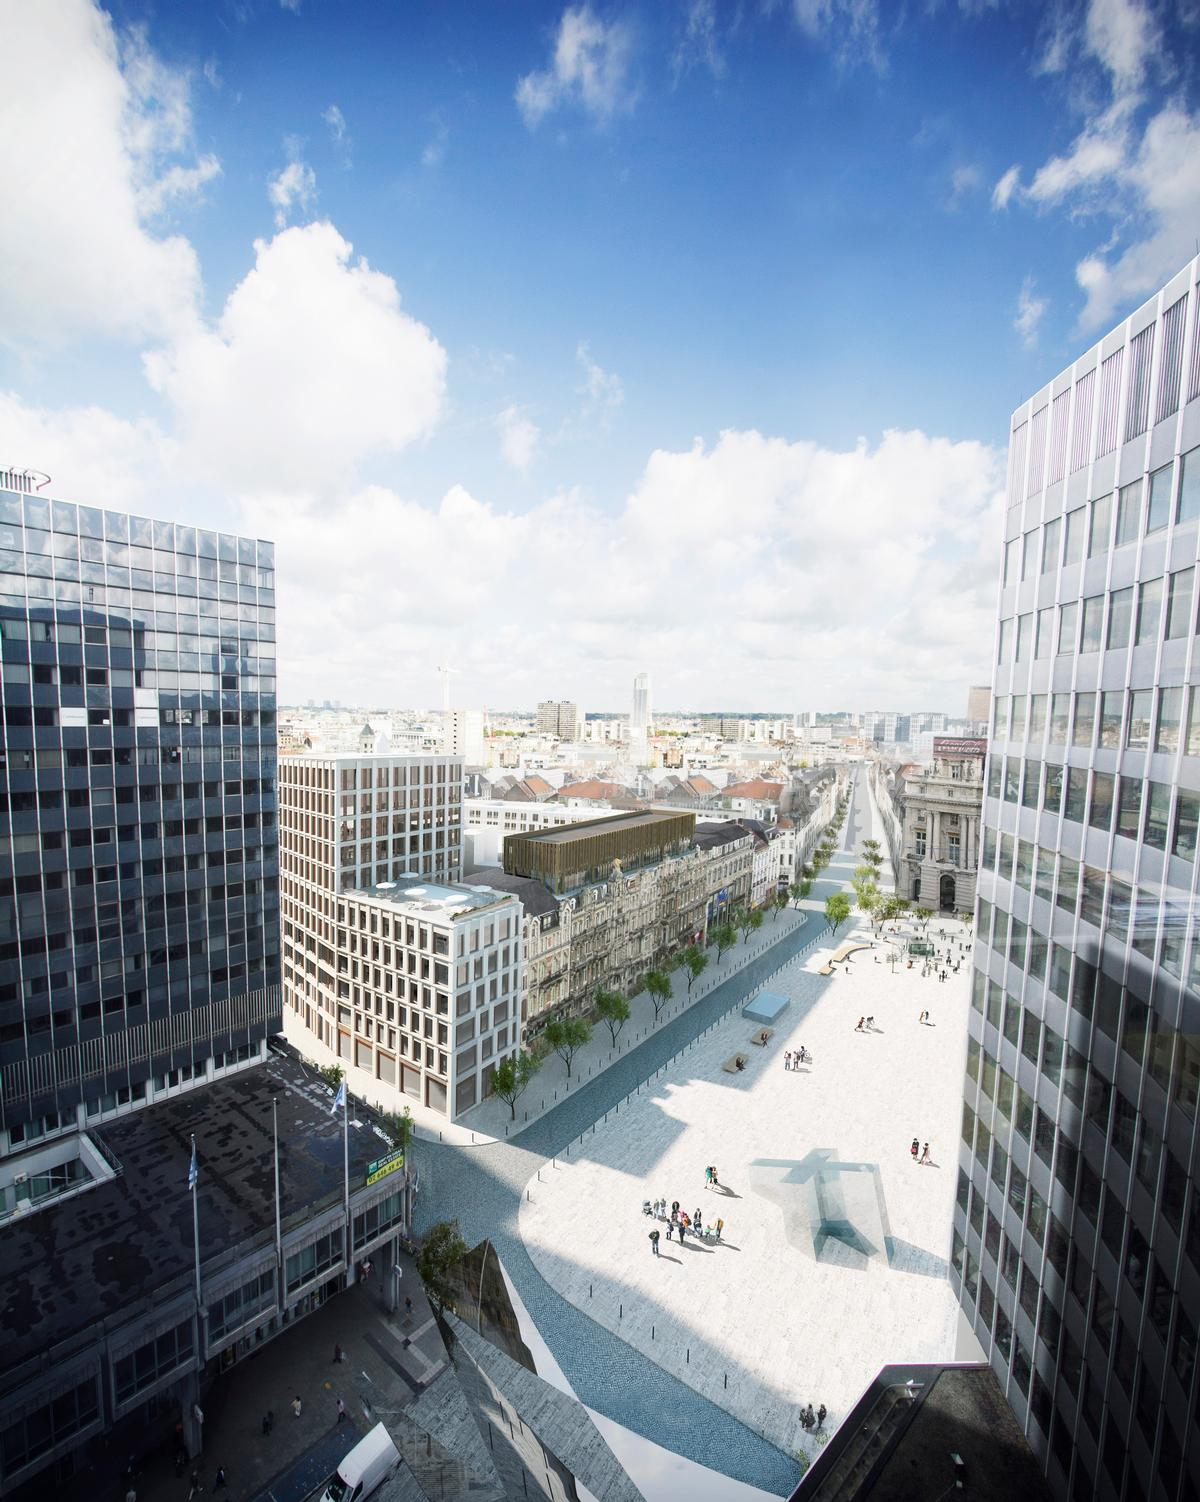 The development will cover an area of 48,000sq m (517,000sq ft) / Henning Larsen